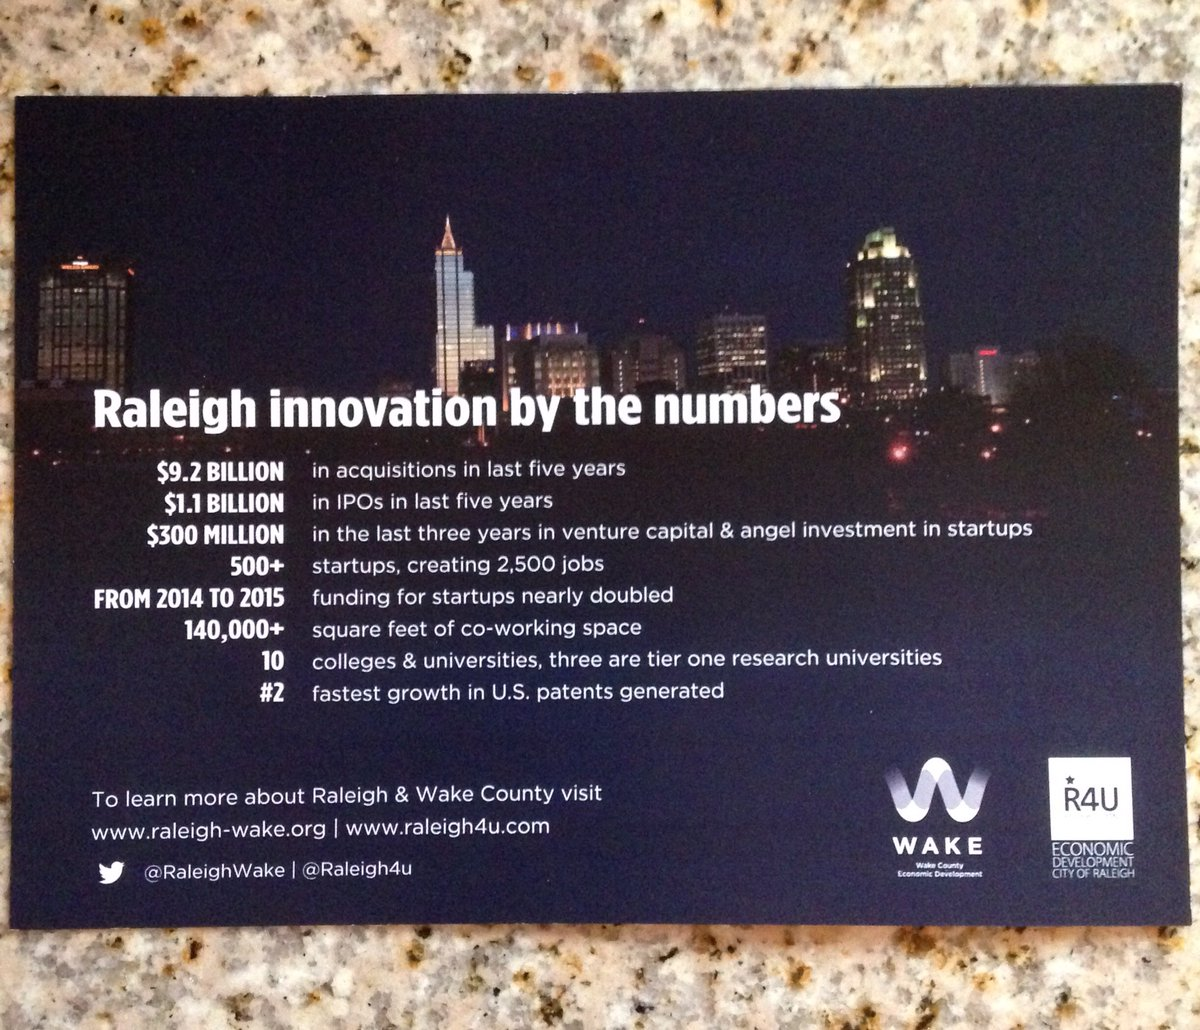 I'm digging these cards about Raleigh. Great job on designing them @keglaser. @RaleighWake @Raleigh4u https://t.co/ZRNWzczuVv